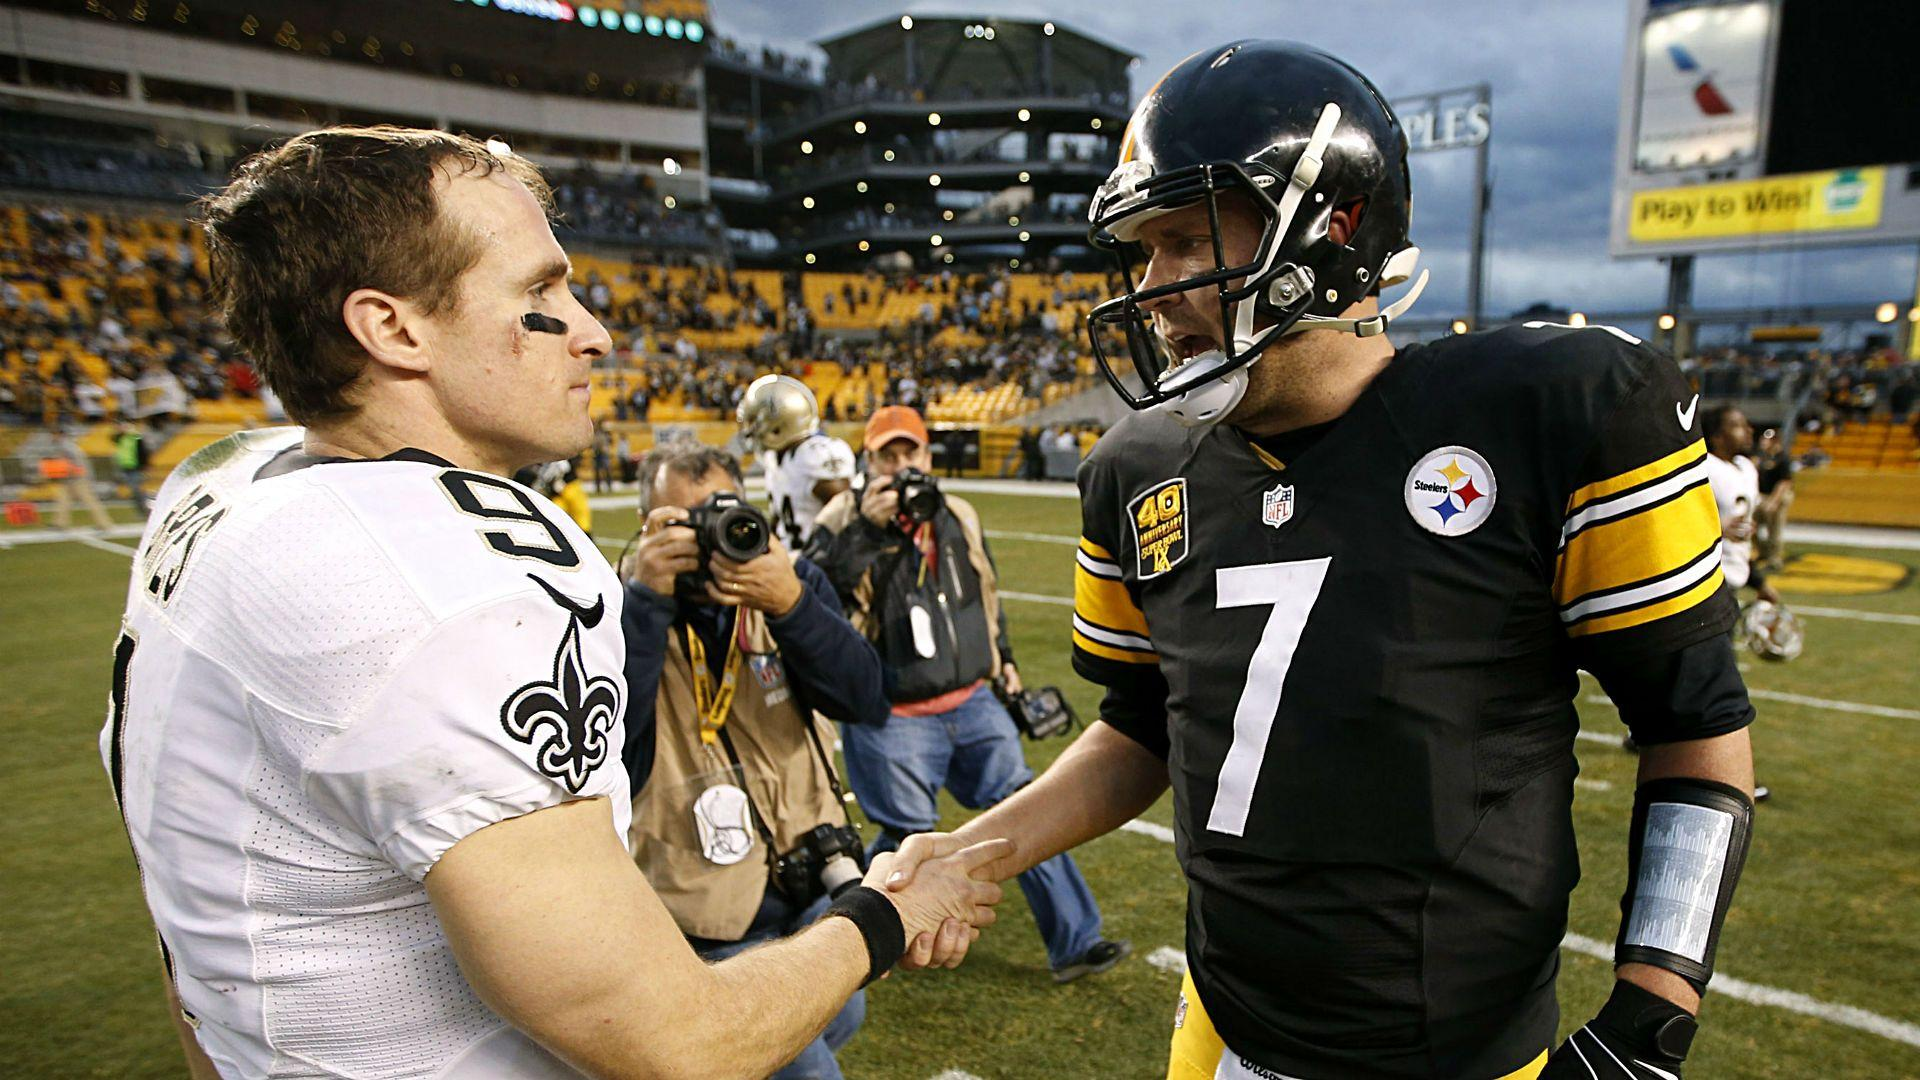 Drew Brees to replace Ben Roethlisberger in Pro Bowl